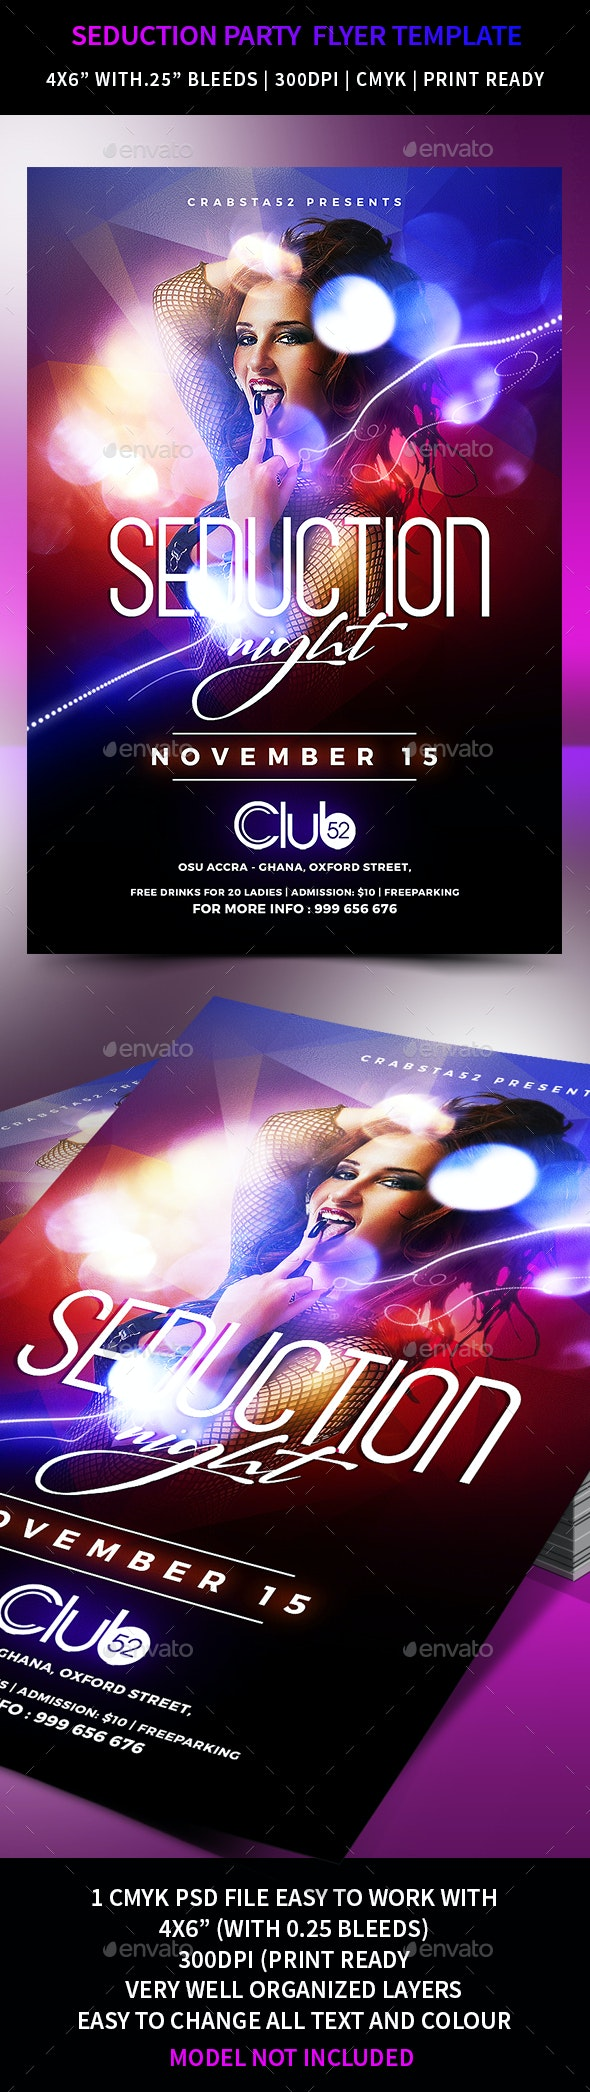 Seduction Party Flyer Template - Events Flyers